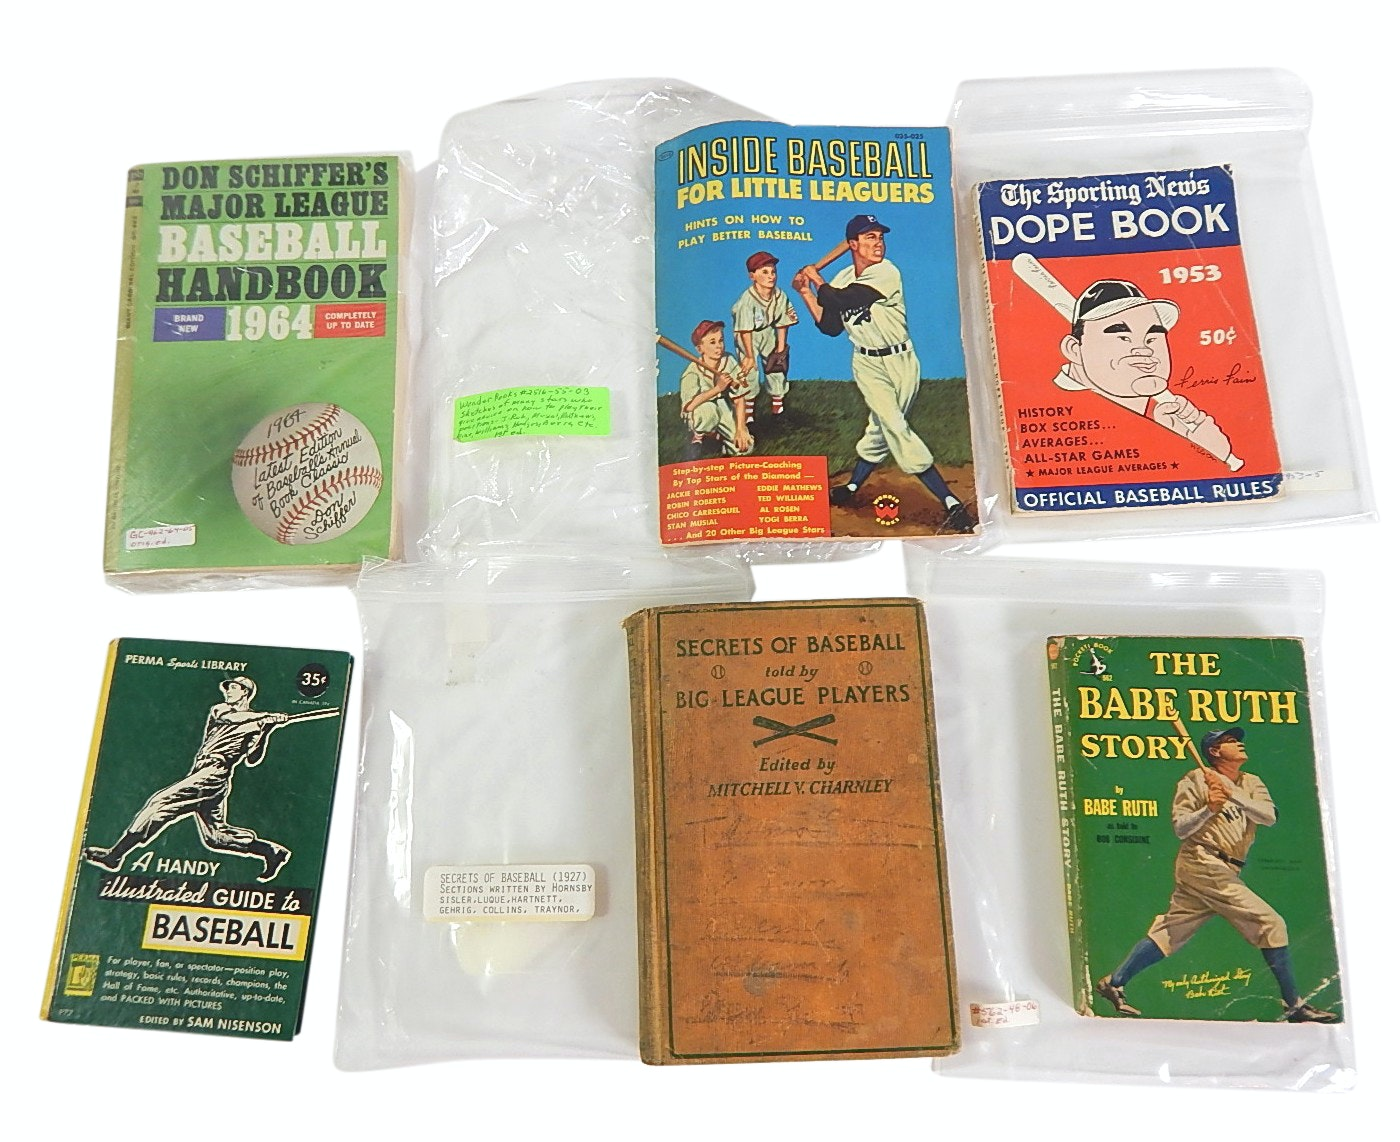 """Vintage Baseball Books Dating to 1927 with """"Secrets of Baseball"""" and More"""